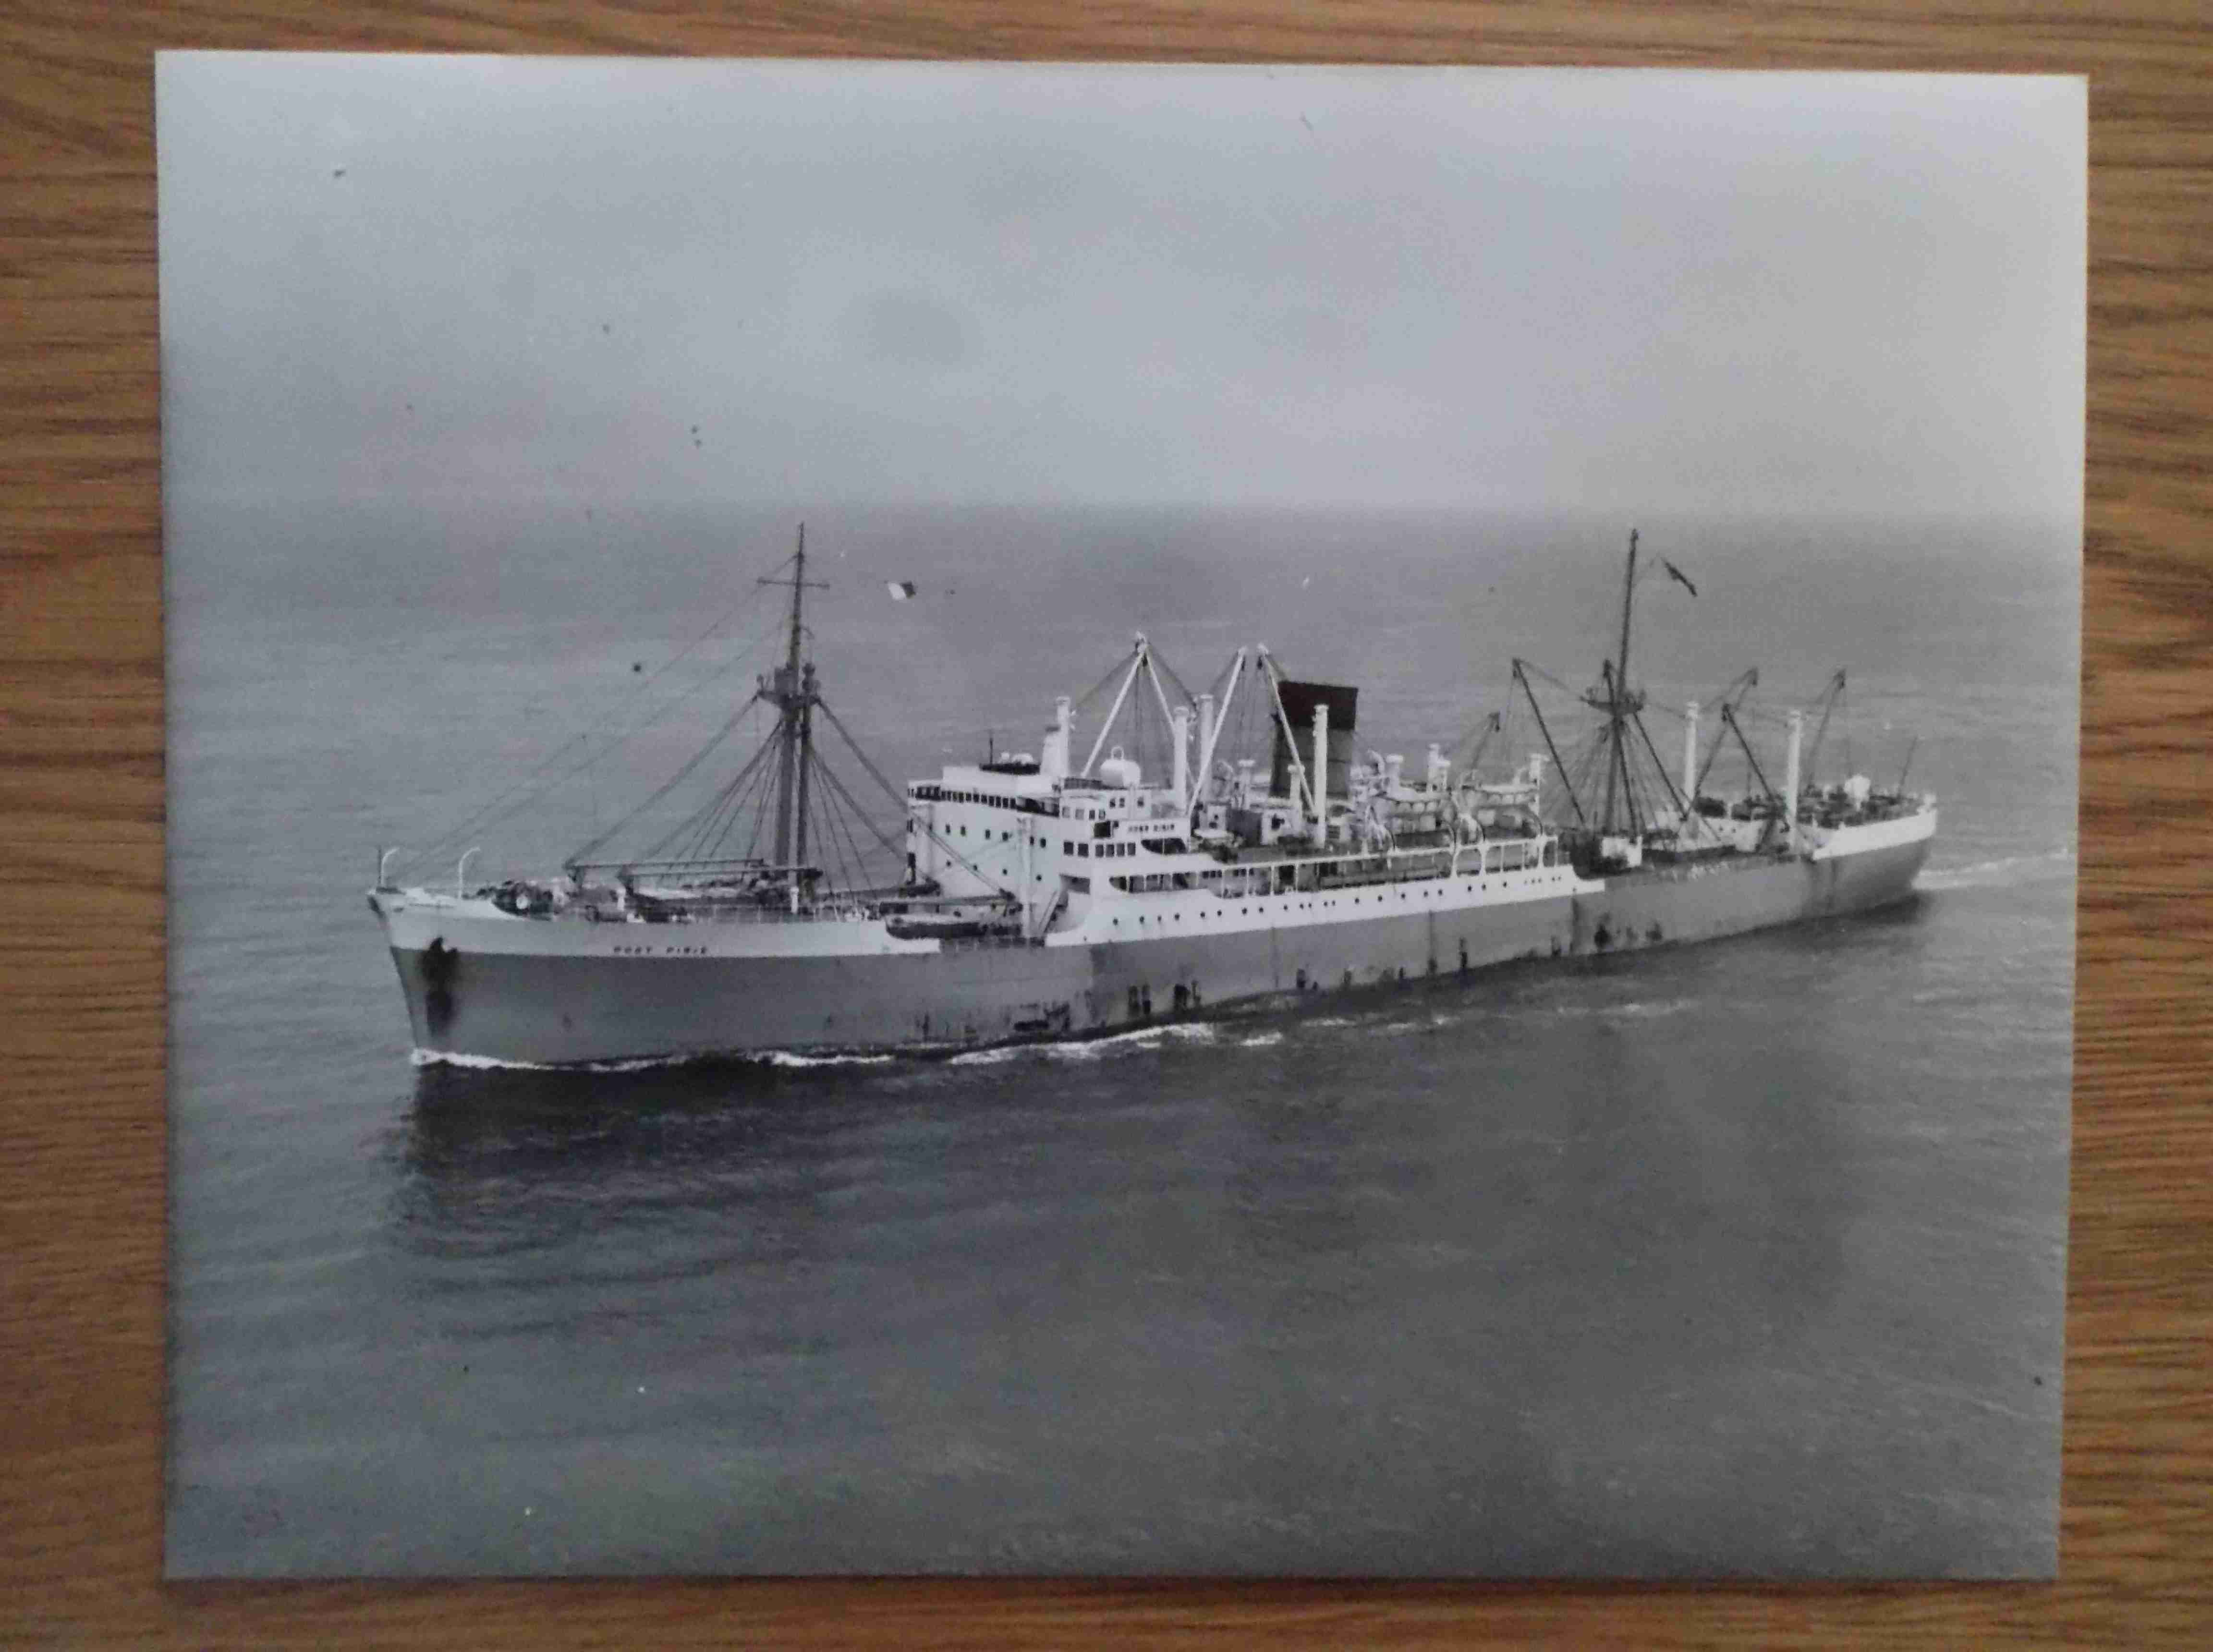 LARGE B/W PHOTOGRAPH OF THE PORT LINE VESSEL THE PORT PIRIE